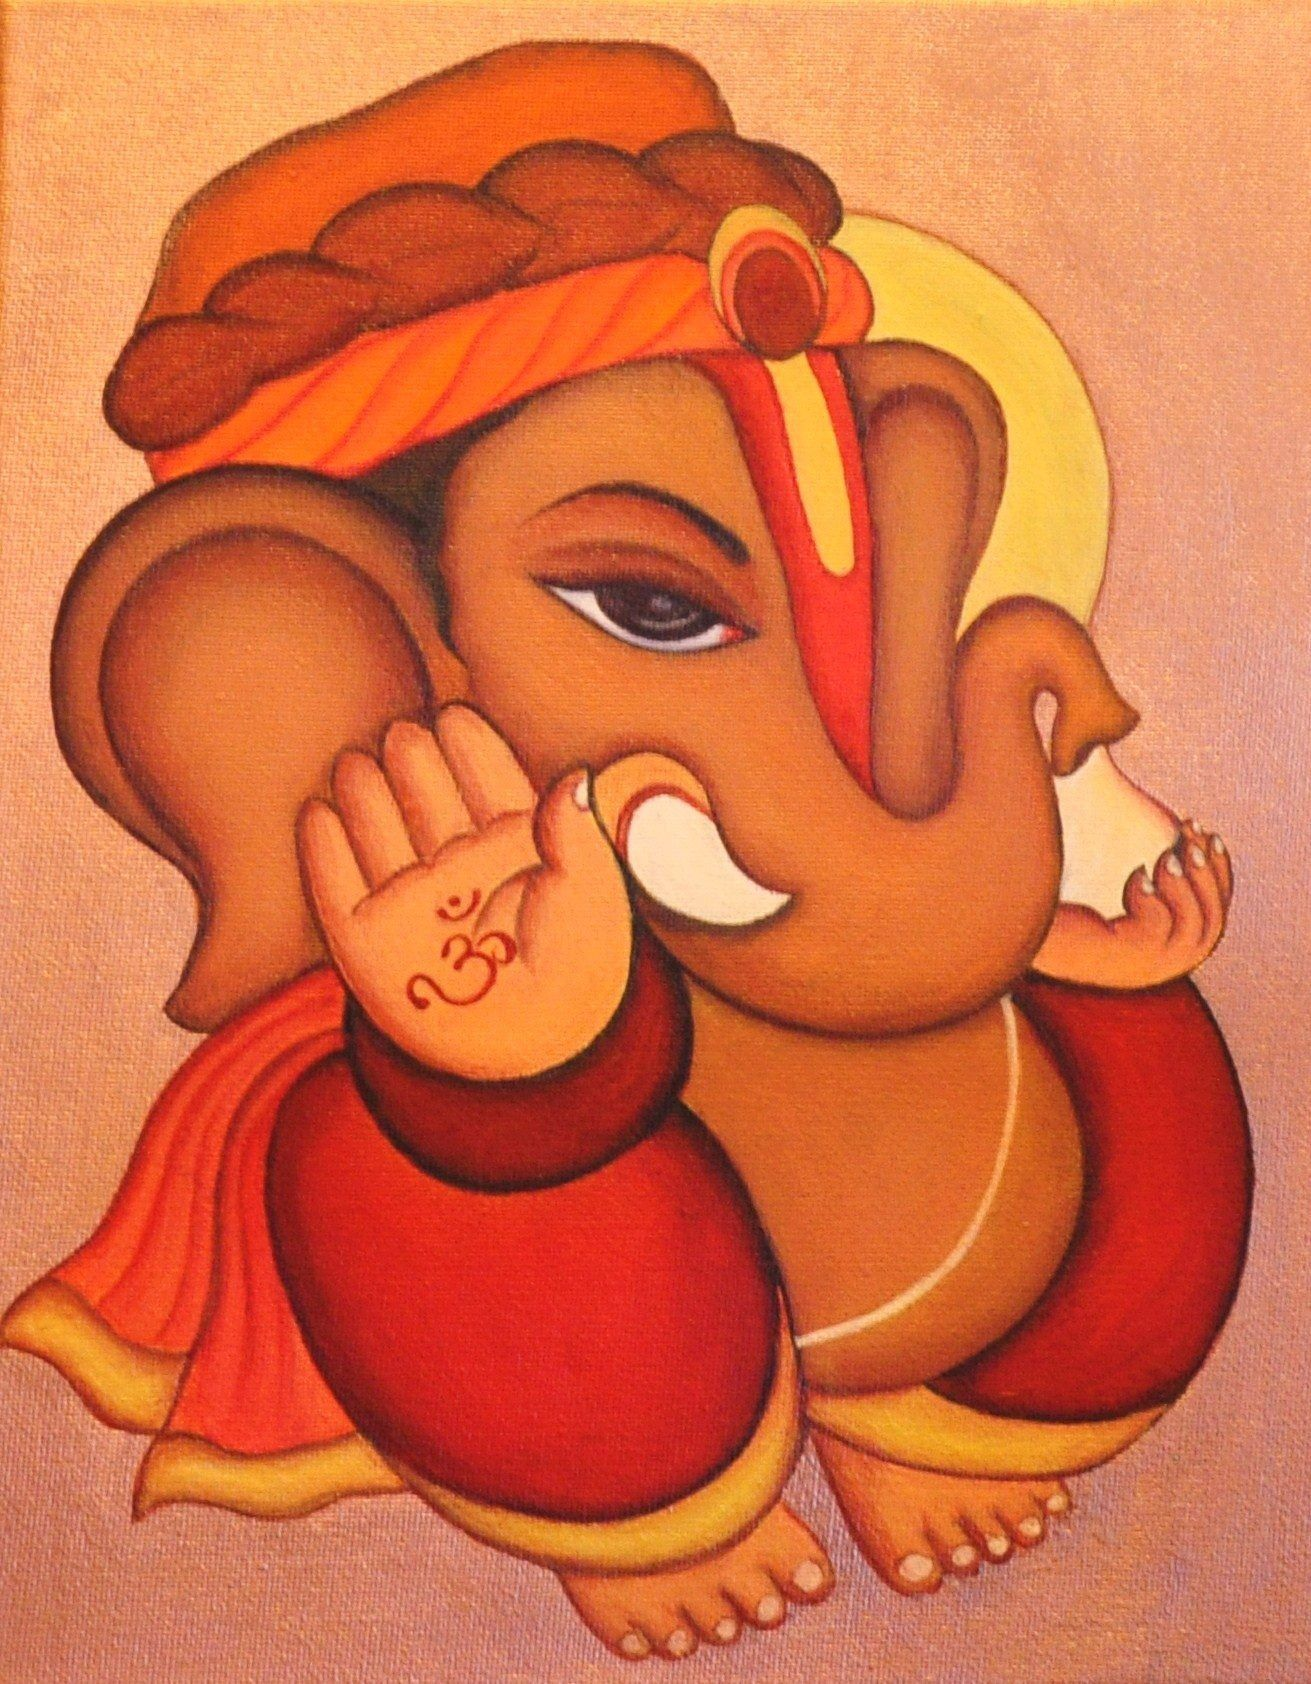 Ganesha painting........m | Sri Ganesh Art | Pinterest ...